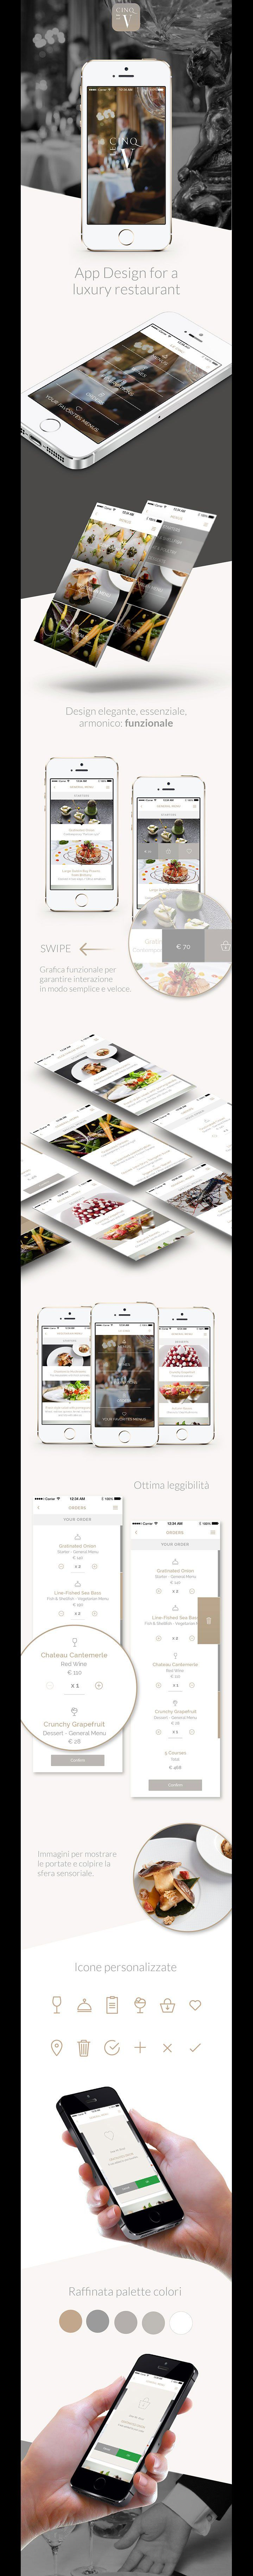 App Design for a luxury restaurant app ios iphone smartphone order restaurant